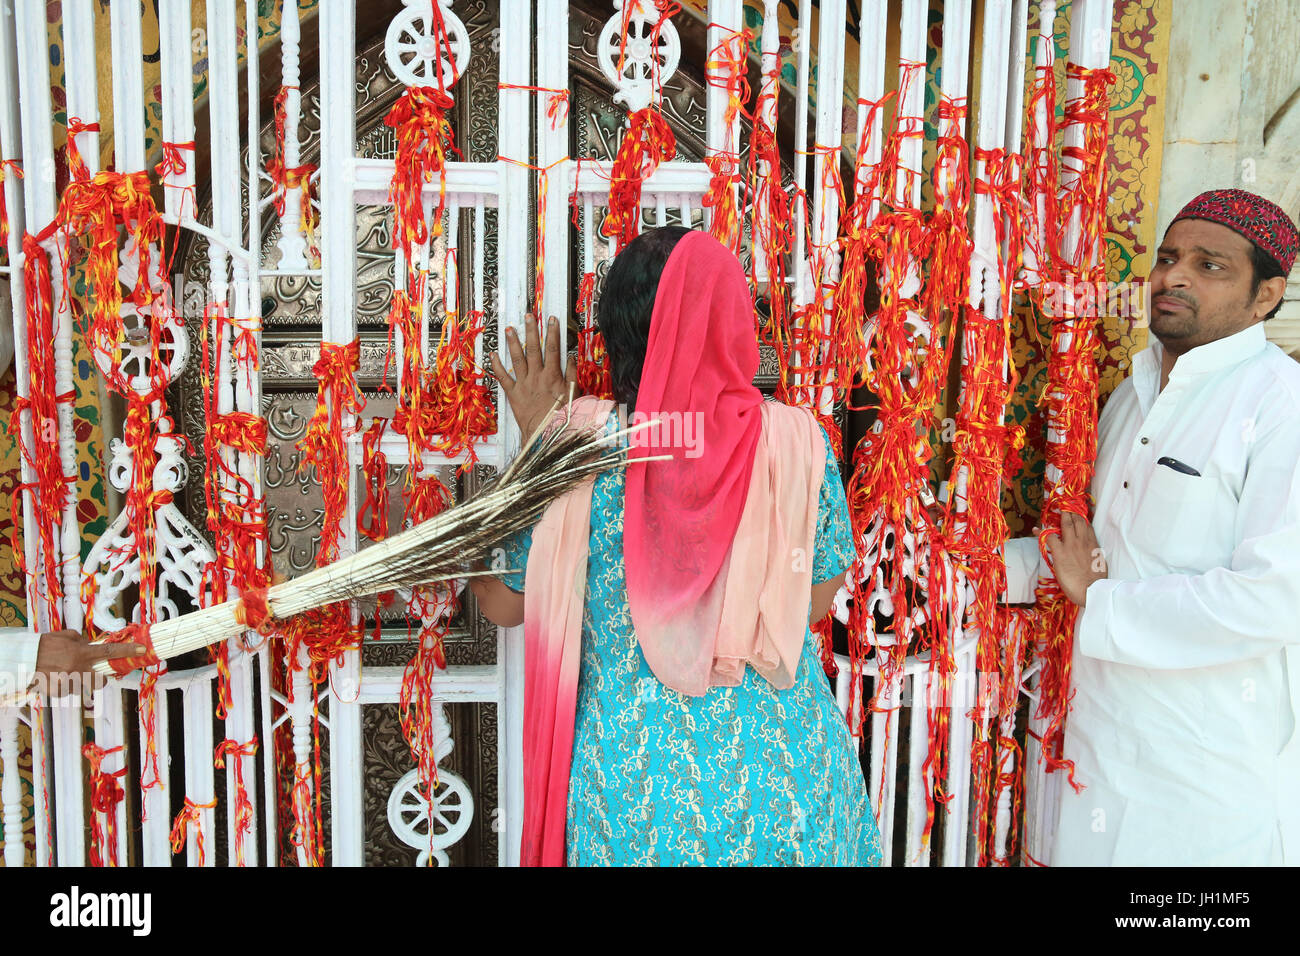 Ajmer Sharif dargah, Rajasthan. Pilgrim touched with peacock feathers used to clean the tomb shrine. India. Stock Photo